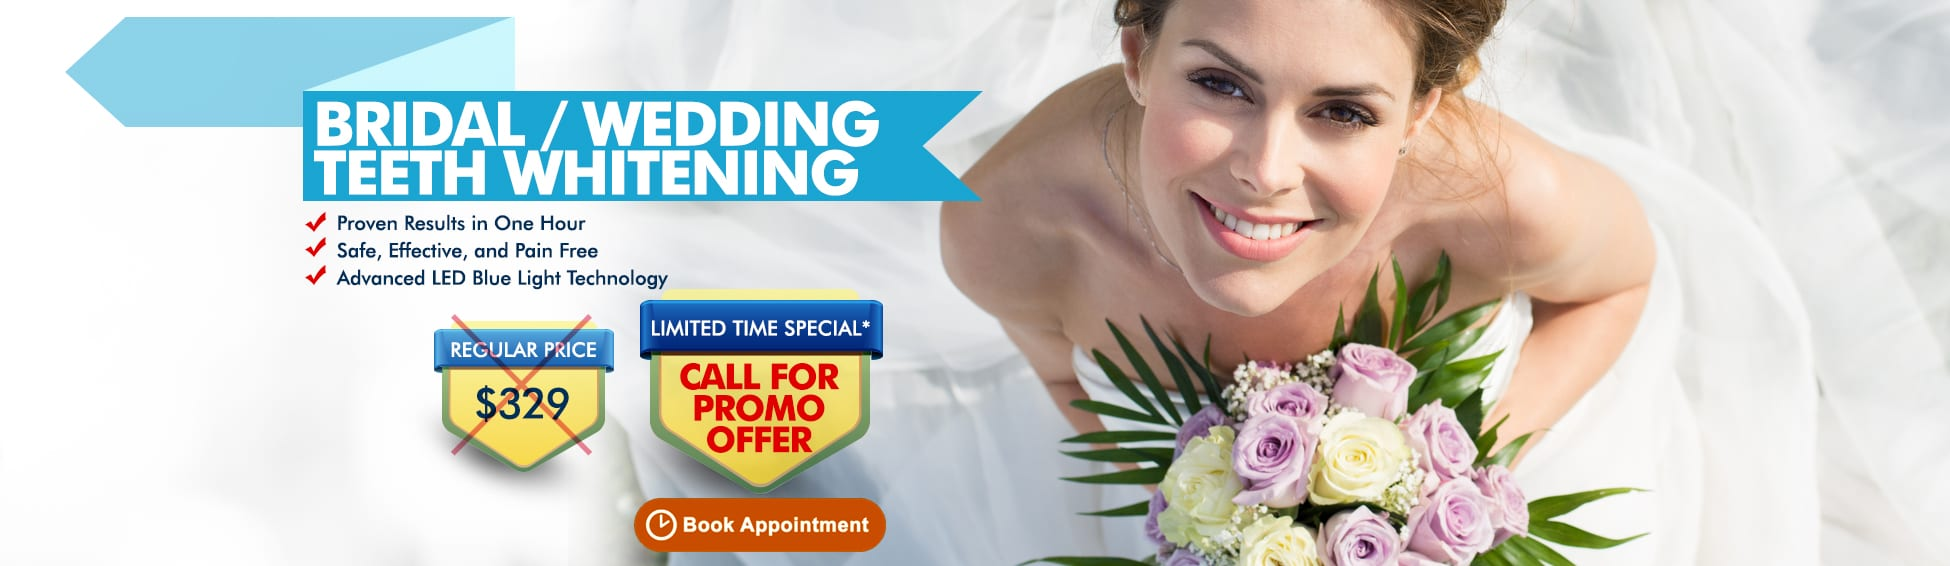 Bridal Wedding Teeth Whitening Packages - Call For Promo Offer